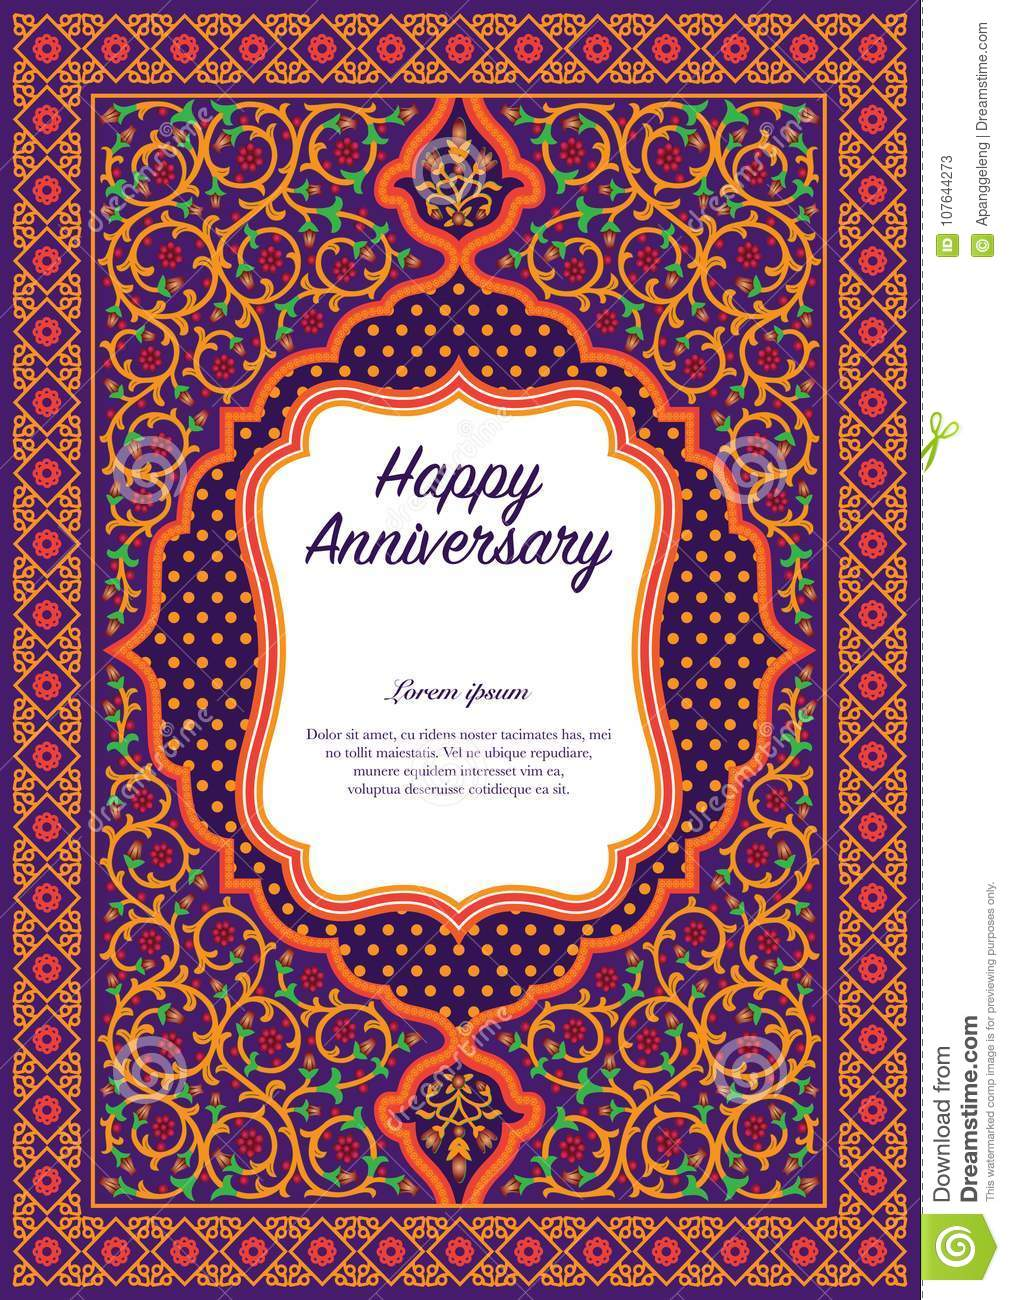 Decorative Floral Ornament Frame Book Cover Or Fabric In Islamic